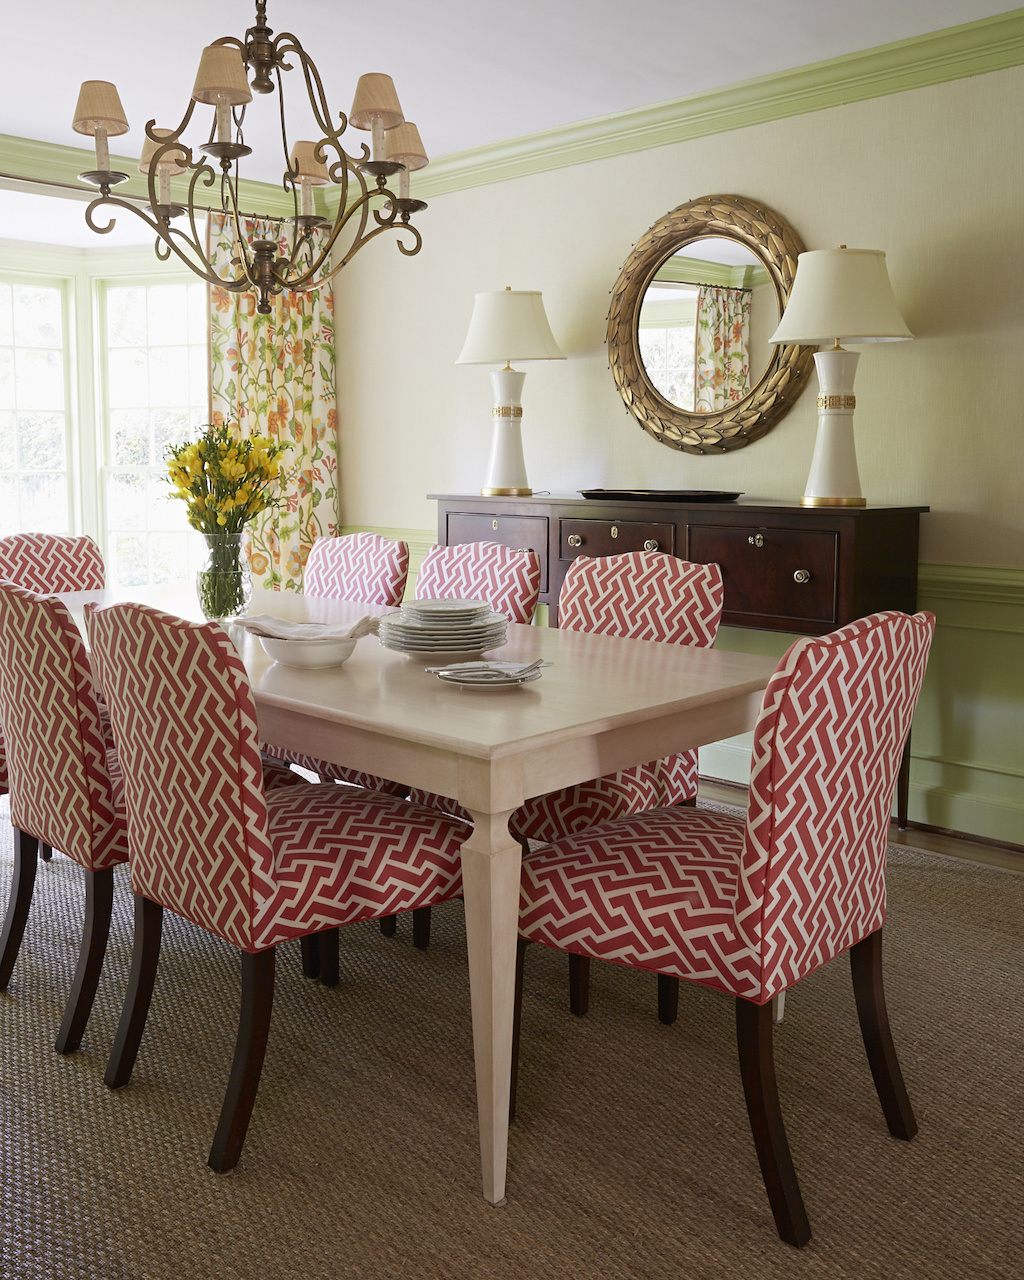 A sideboard by Kittinger and lamps from Mrs. Howard complement the red Quadrille fabric on dining room chairs.